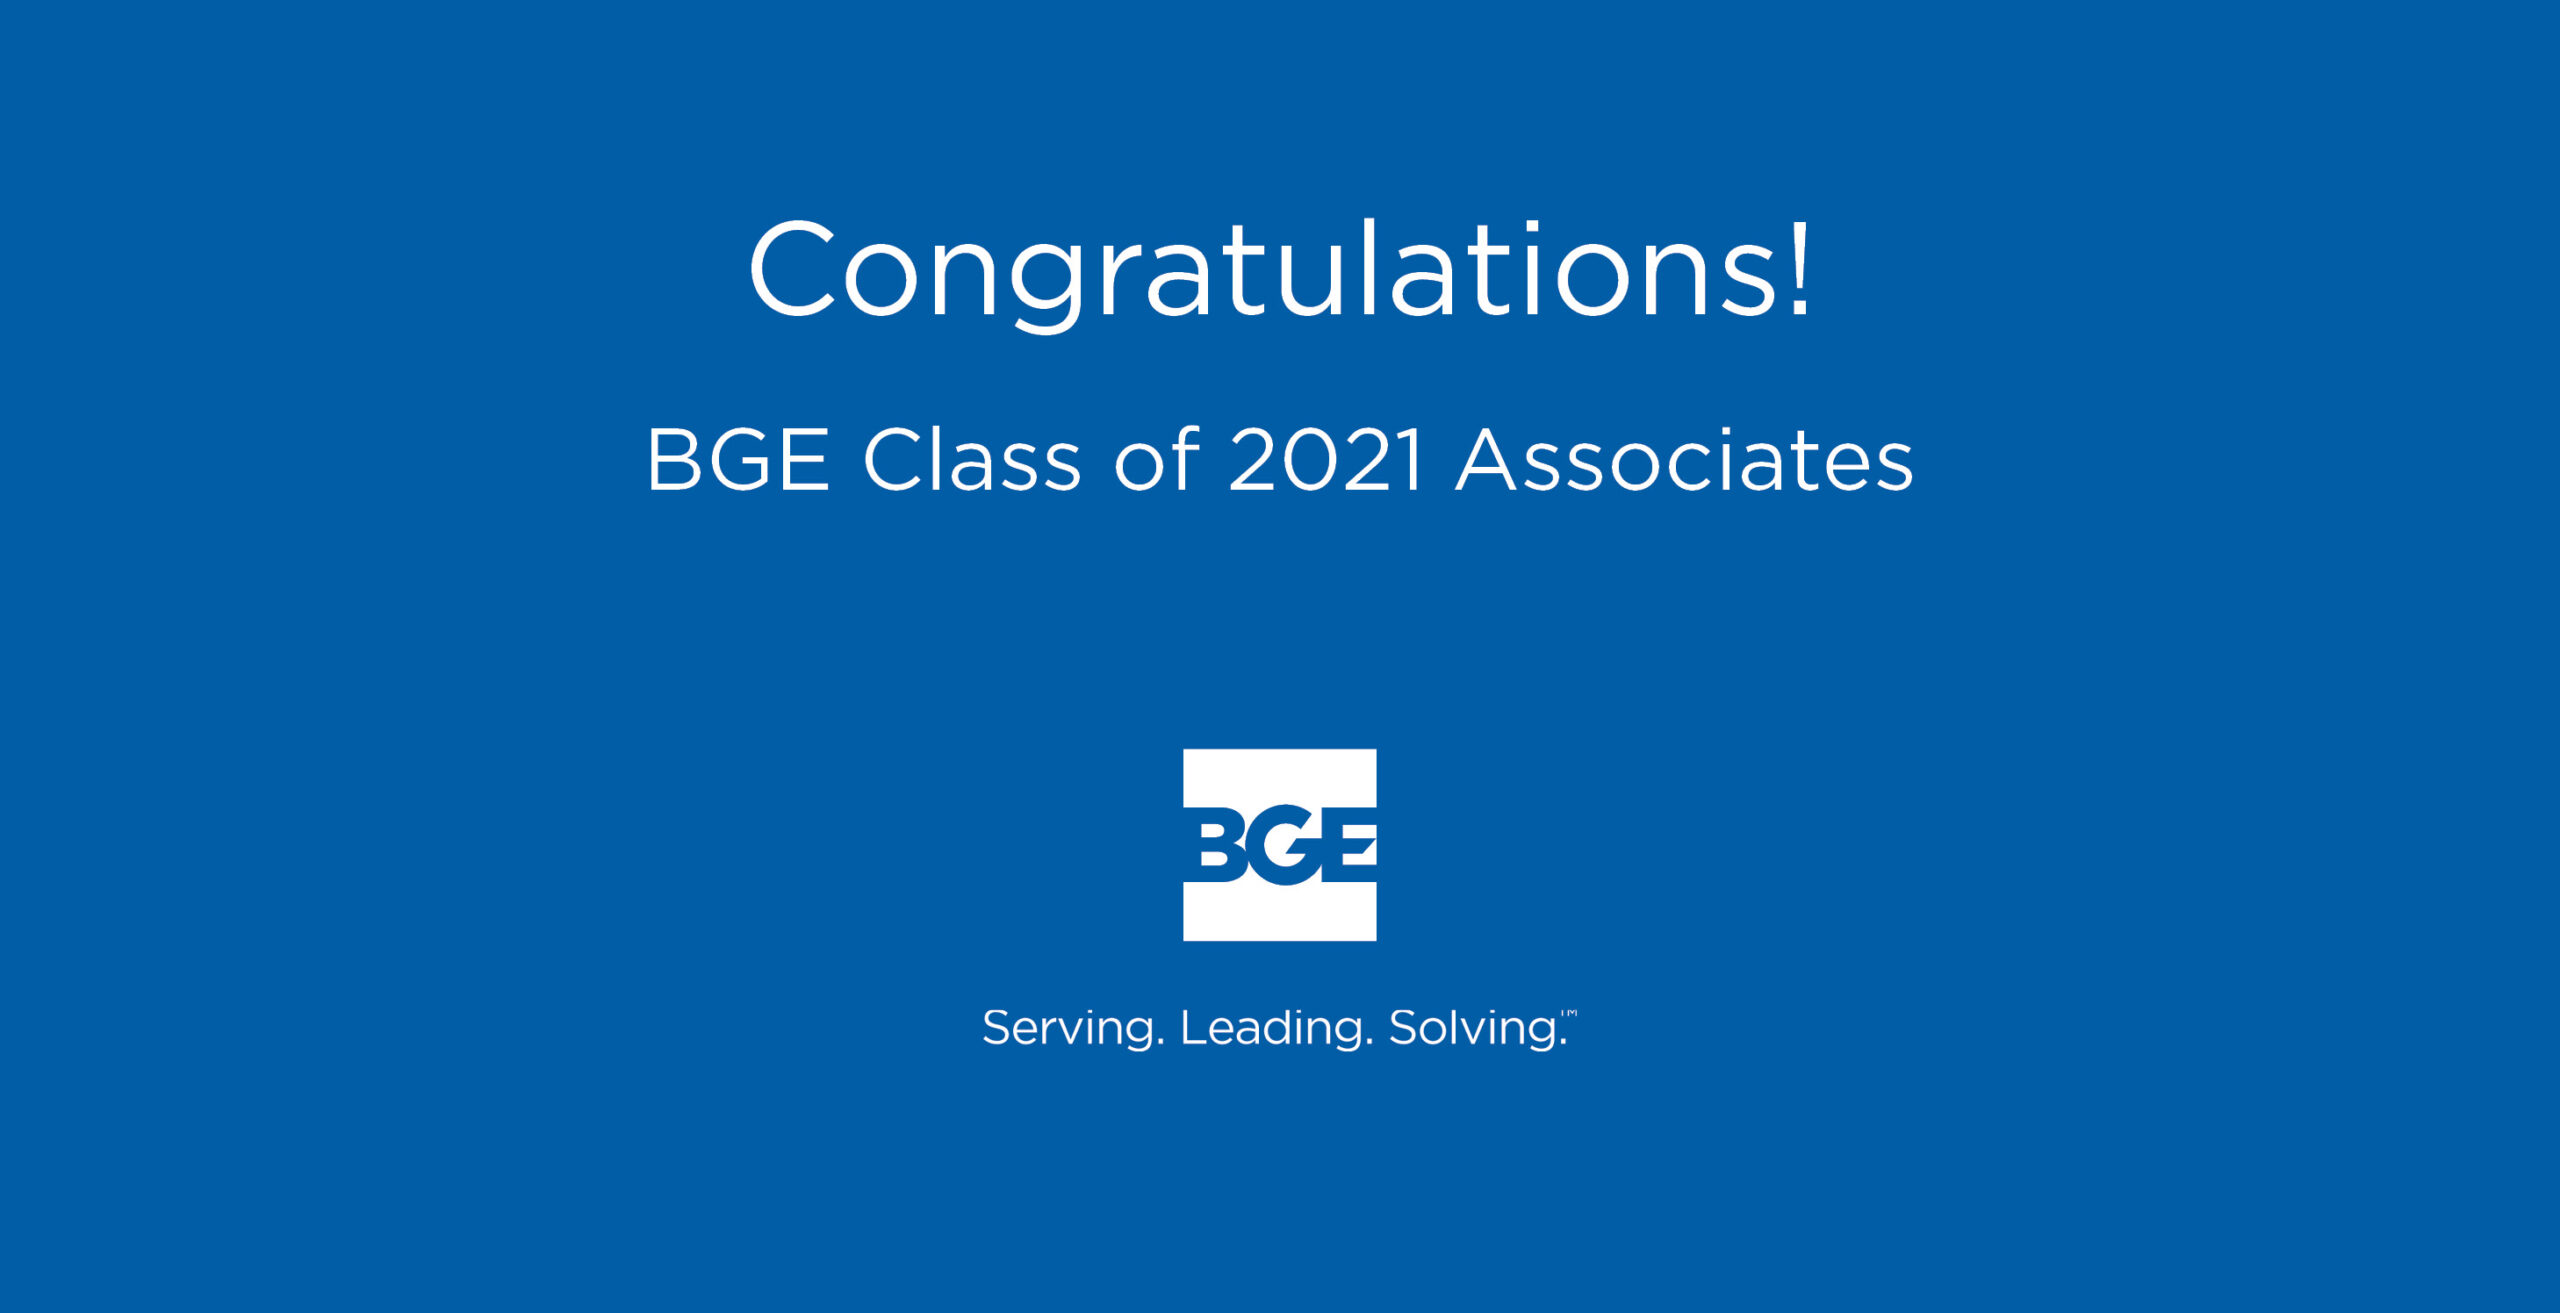 BGE Announces 2021 Class of Associates